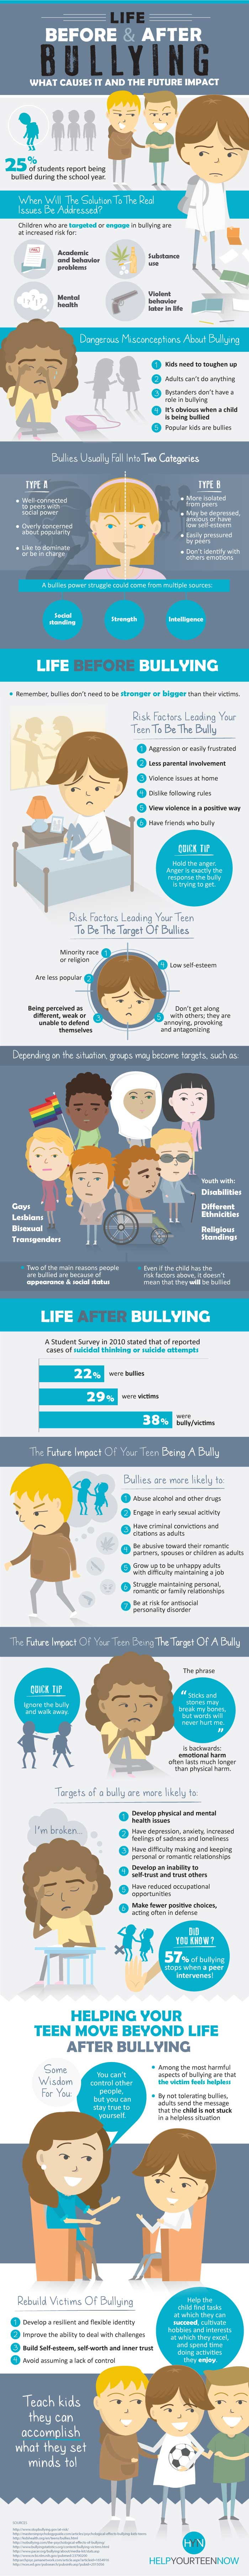 Life Before And After Bullying - Infographic - What Causes It And The Future Impact